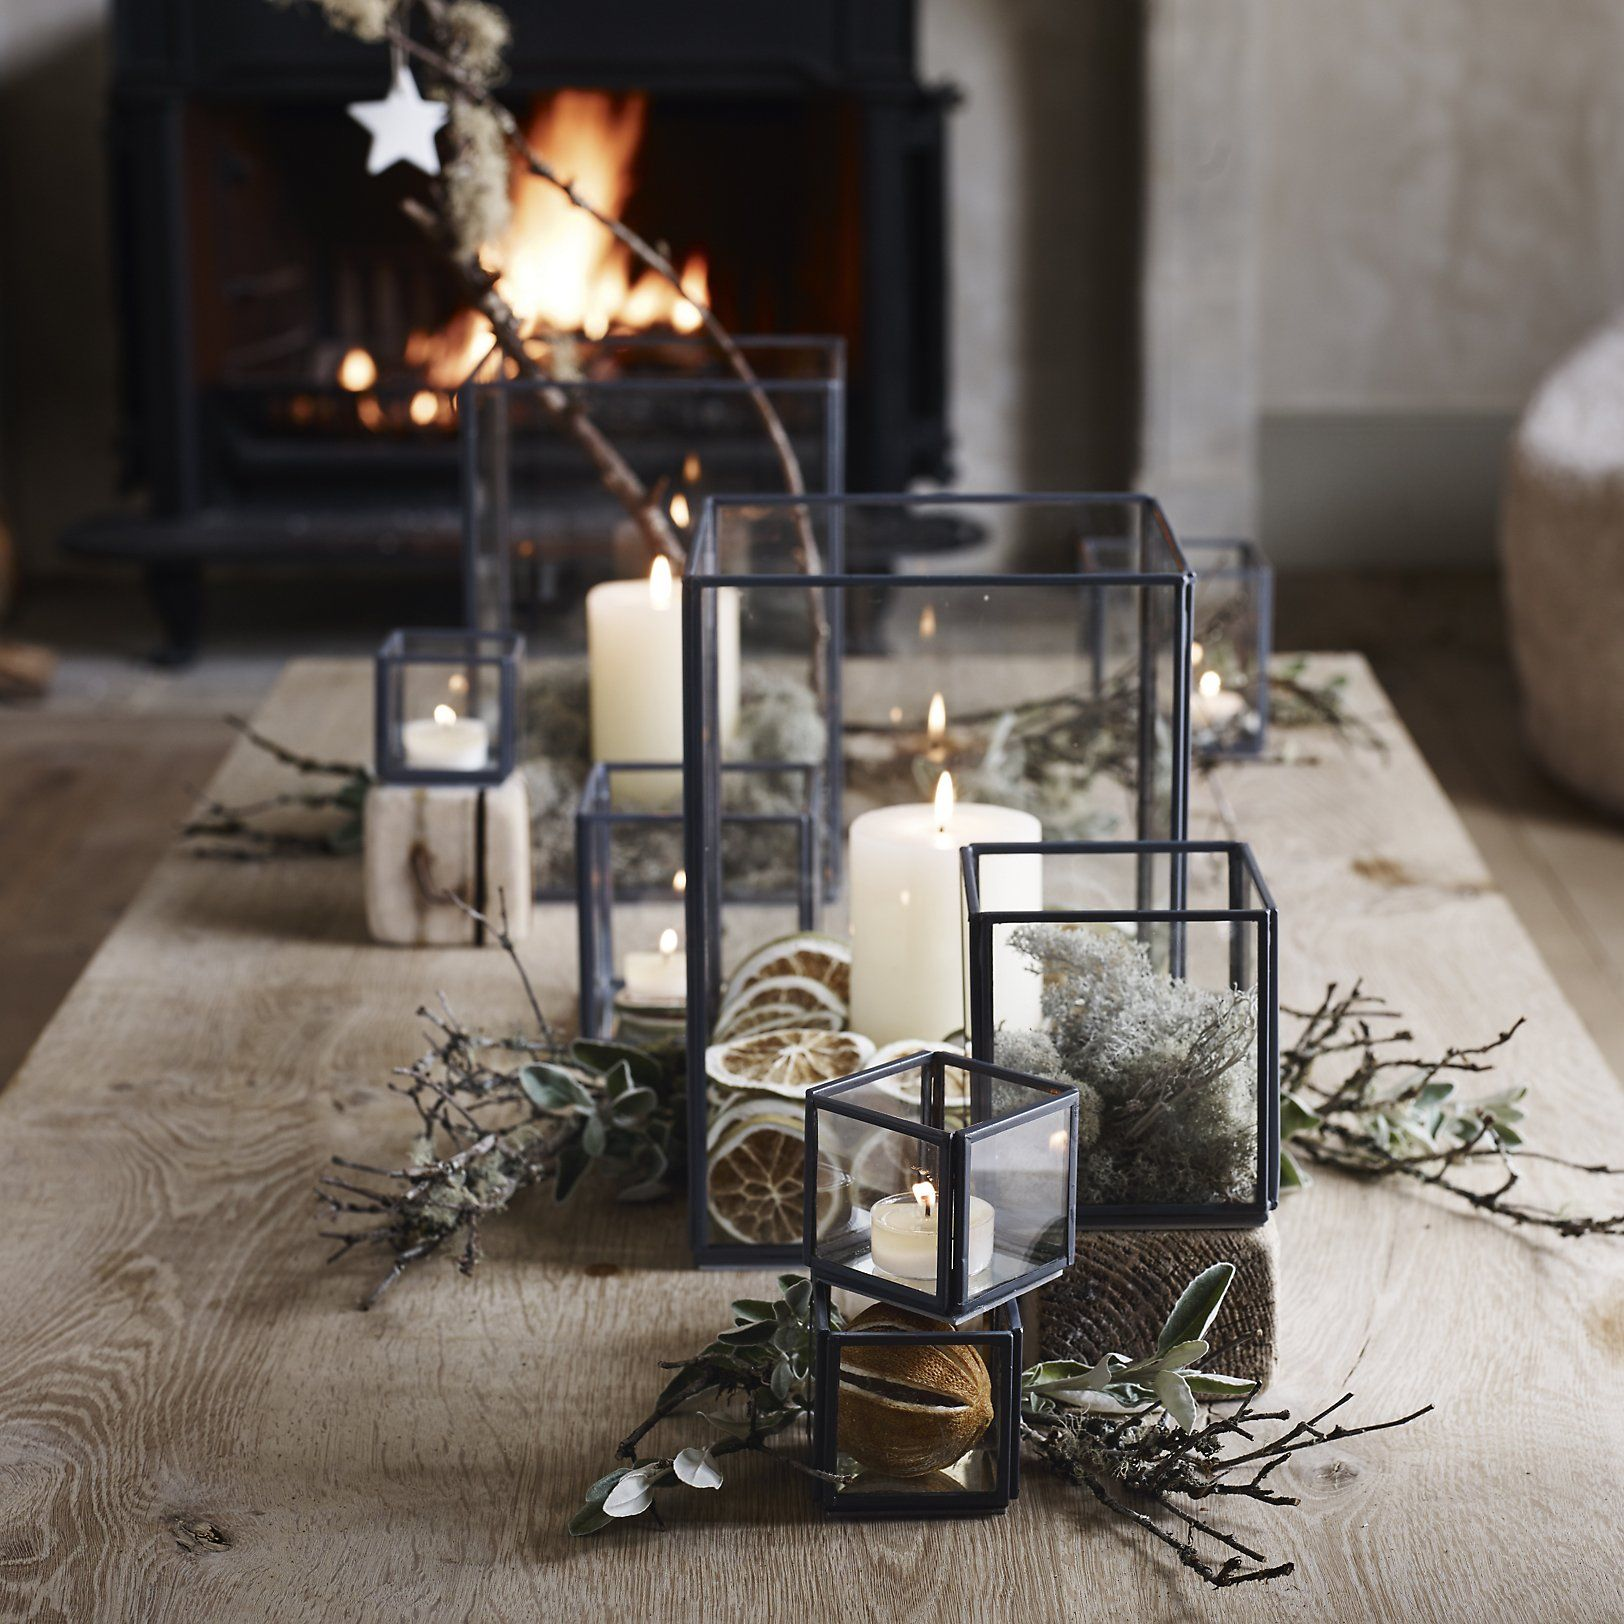 Home home decoration candles amp candle holders scented candles - Whitecompany Scene7 Com Is Image Whitecompany Lanterns_xs16_1_l Wid 1624 Fmt Jpeg Qlt Large Candle Holderslarge Candlessmall